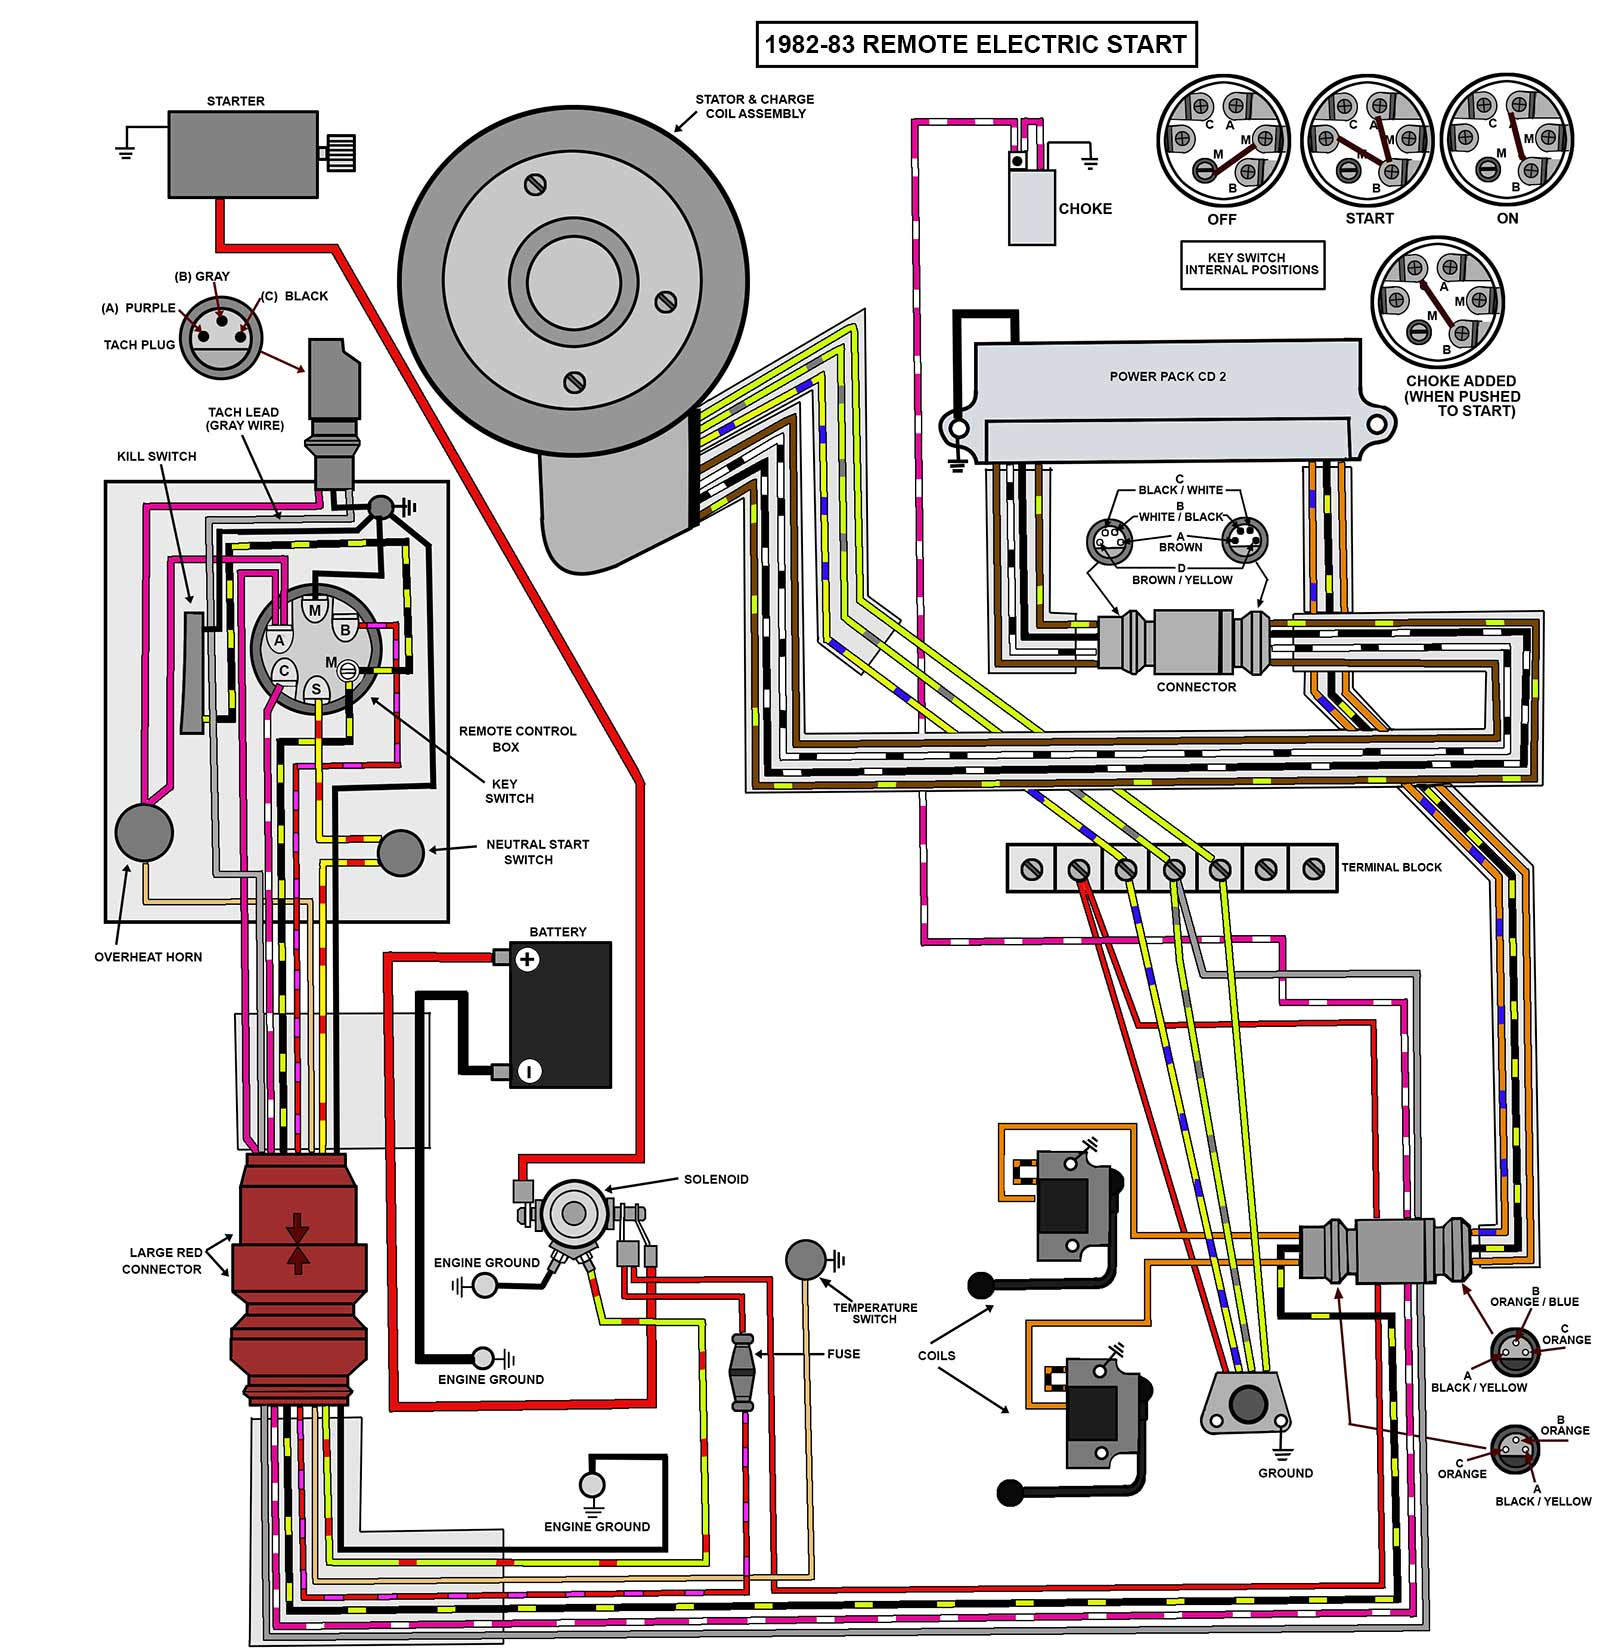 25_35_82 83_elec remote mastertech marine evinrude johnson outboard wiring diagrams 1981 evinrude 35 hp wiring diagram at virtualis.co